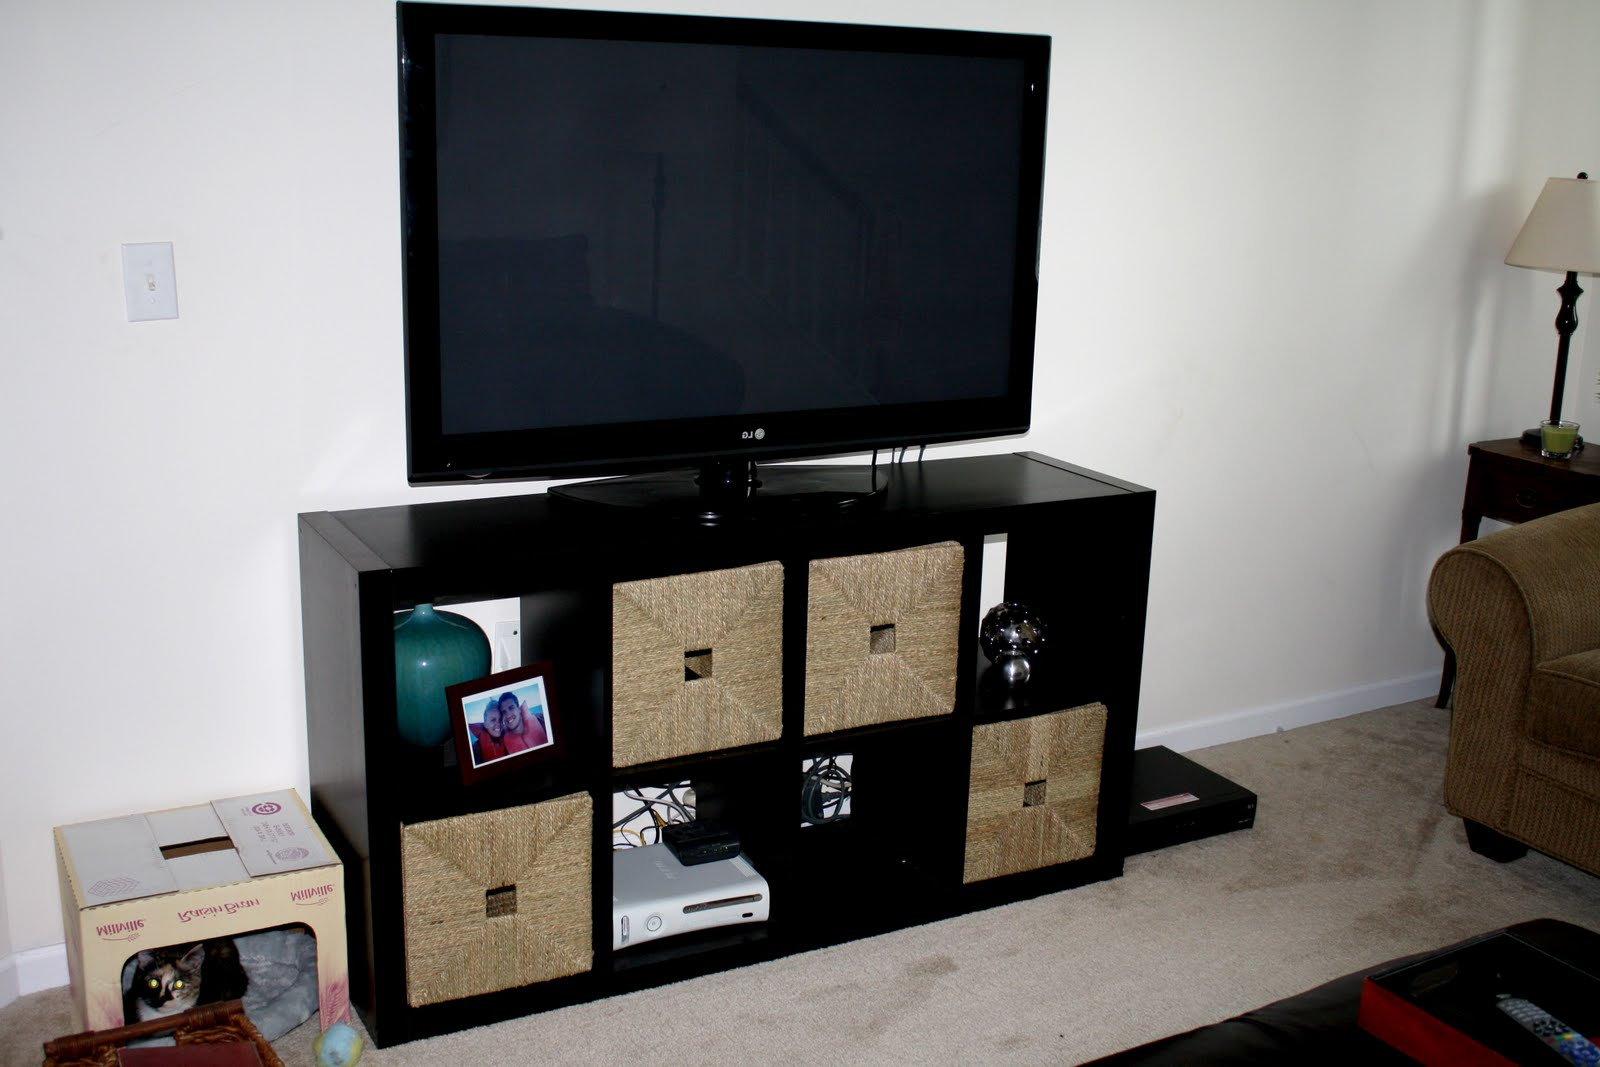 2018 Tv Stand Bookshelf Combo Ikea – Buyouapp Intended For Bookshelf Tv Stands Combo (View 17 of 20)